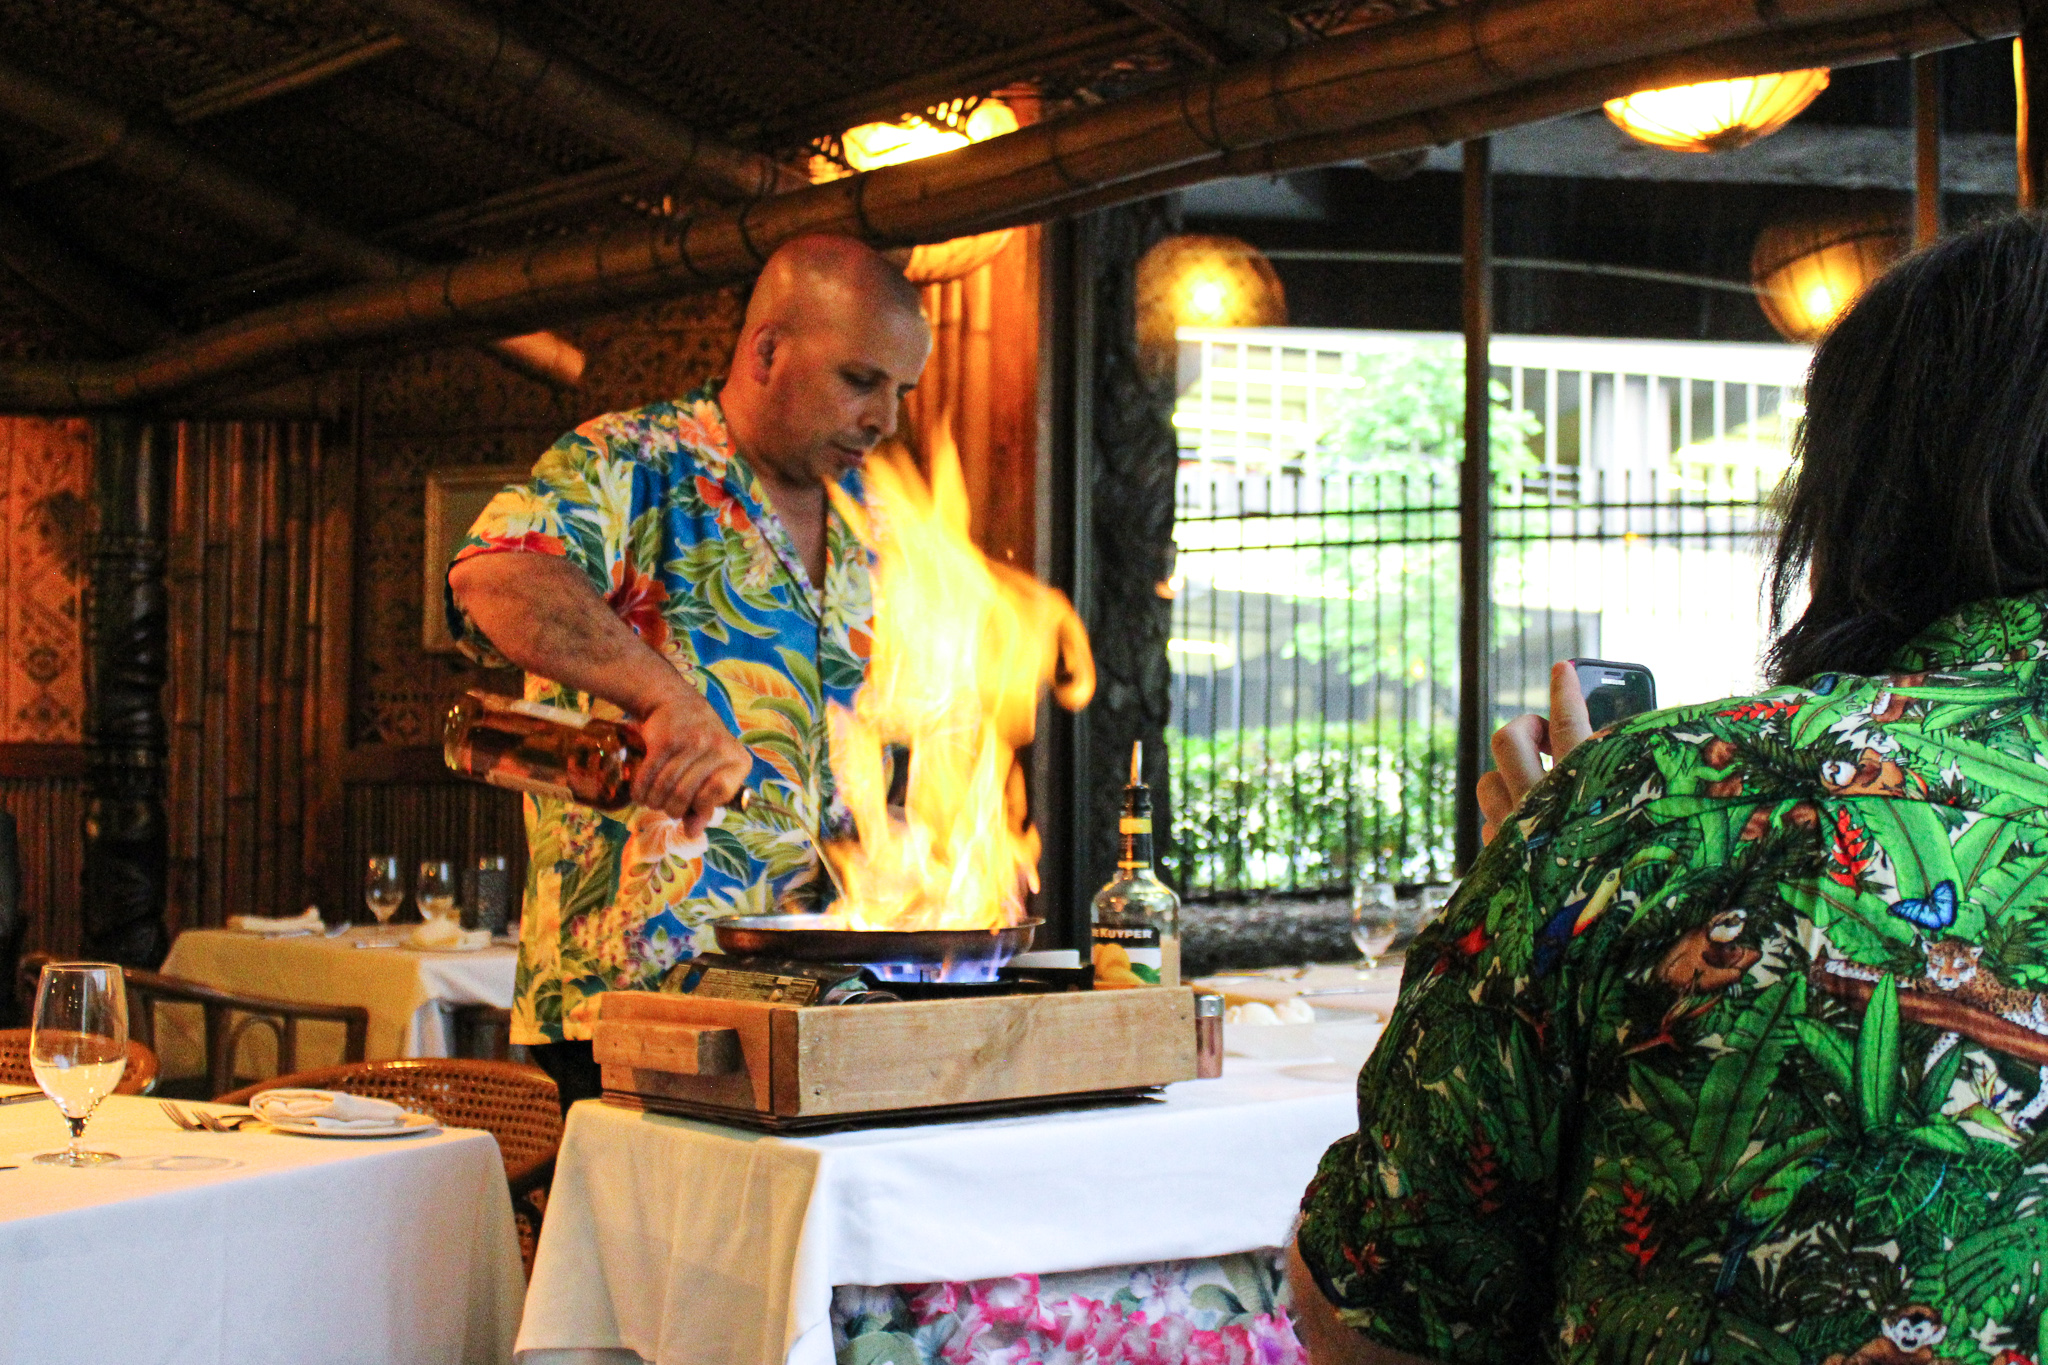 Bananas foster being prepared table-side at Trader Vic's in Atlanta (c) Anna Lanfreschi